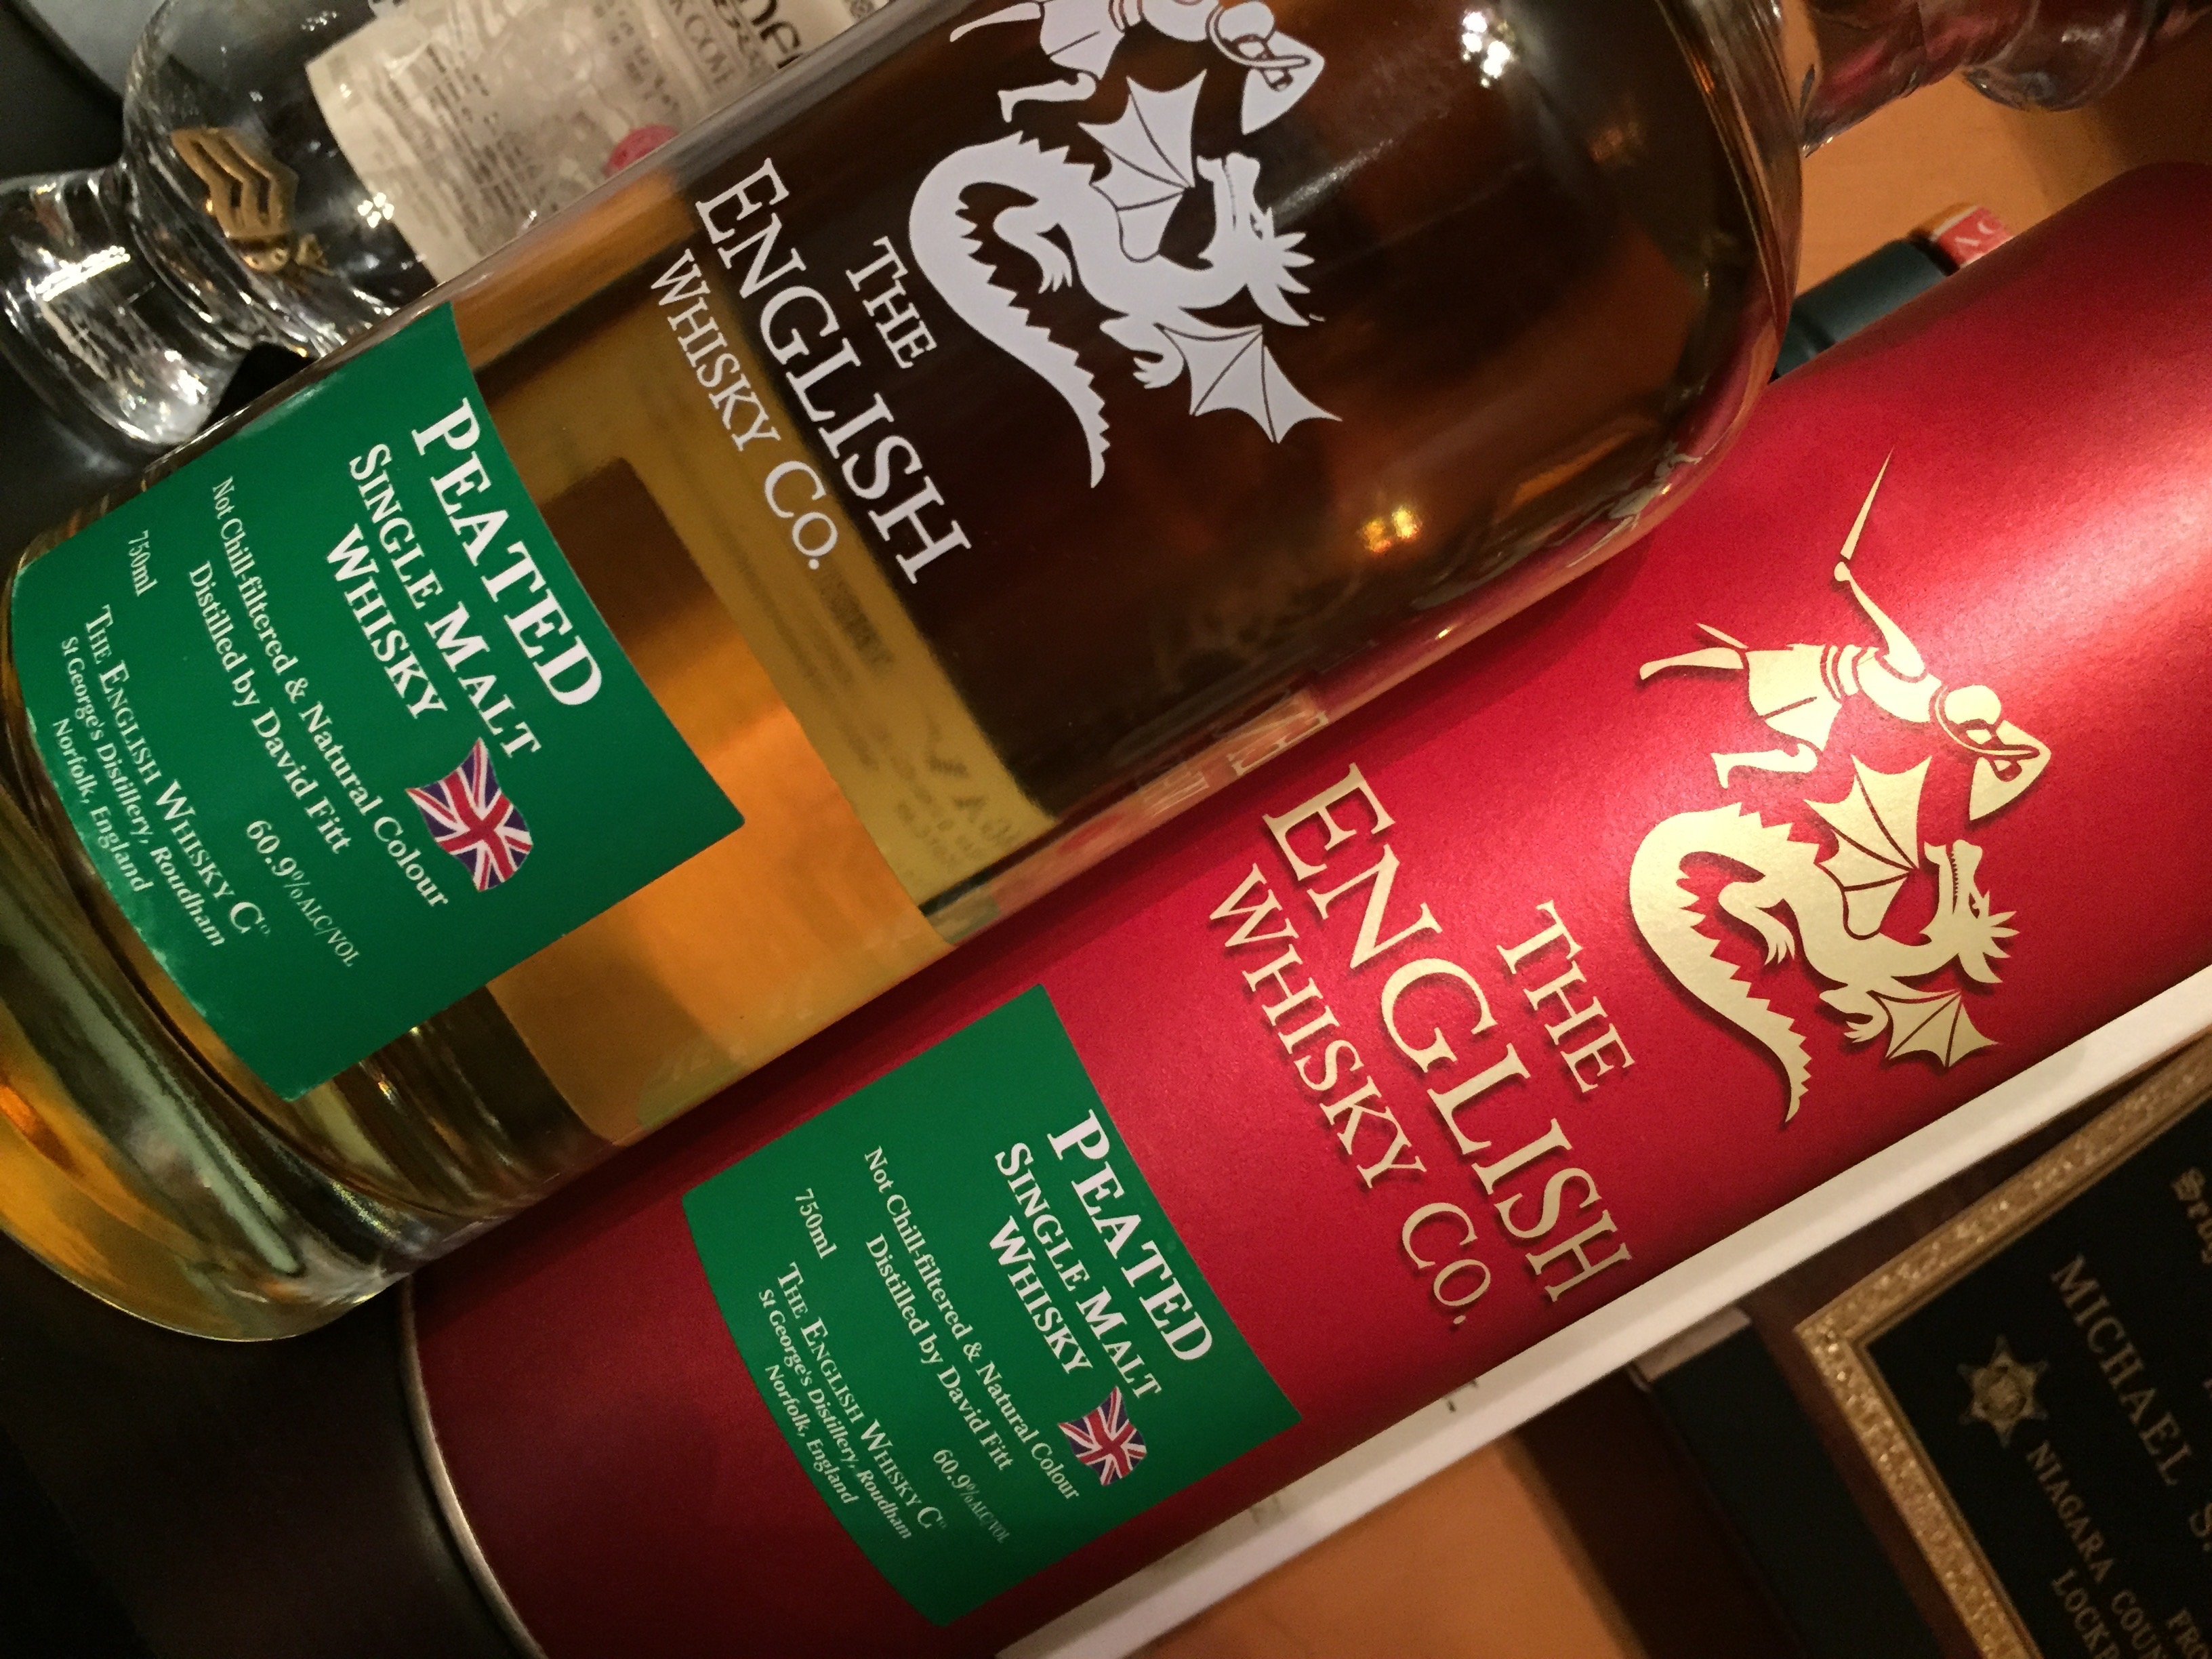 English Whisky Co. Peated Single Malt